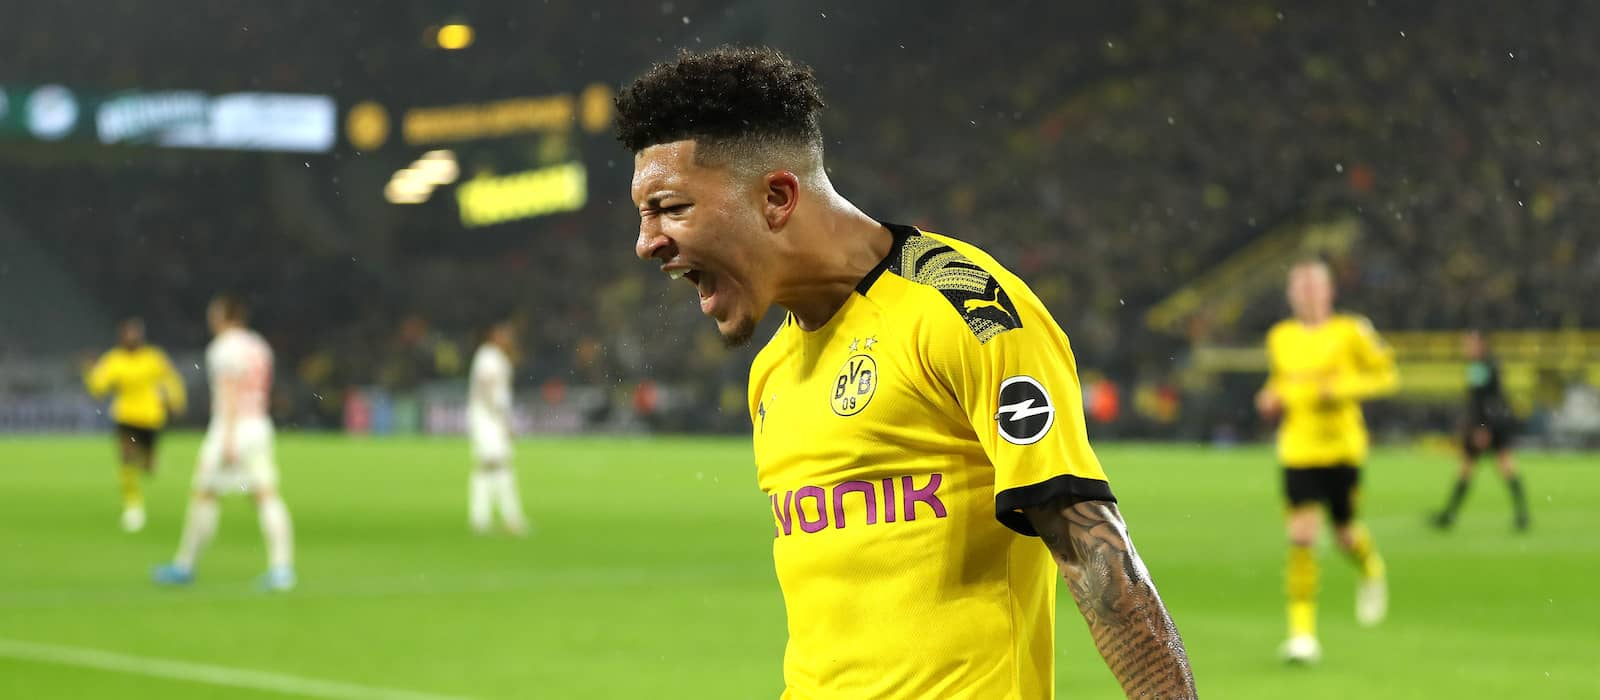 Jadon Sancho deal close? Separating fact from fiction